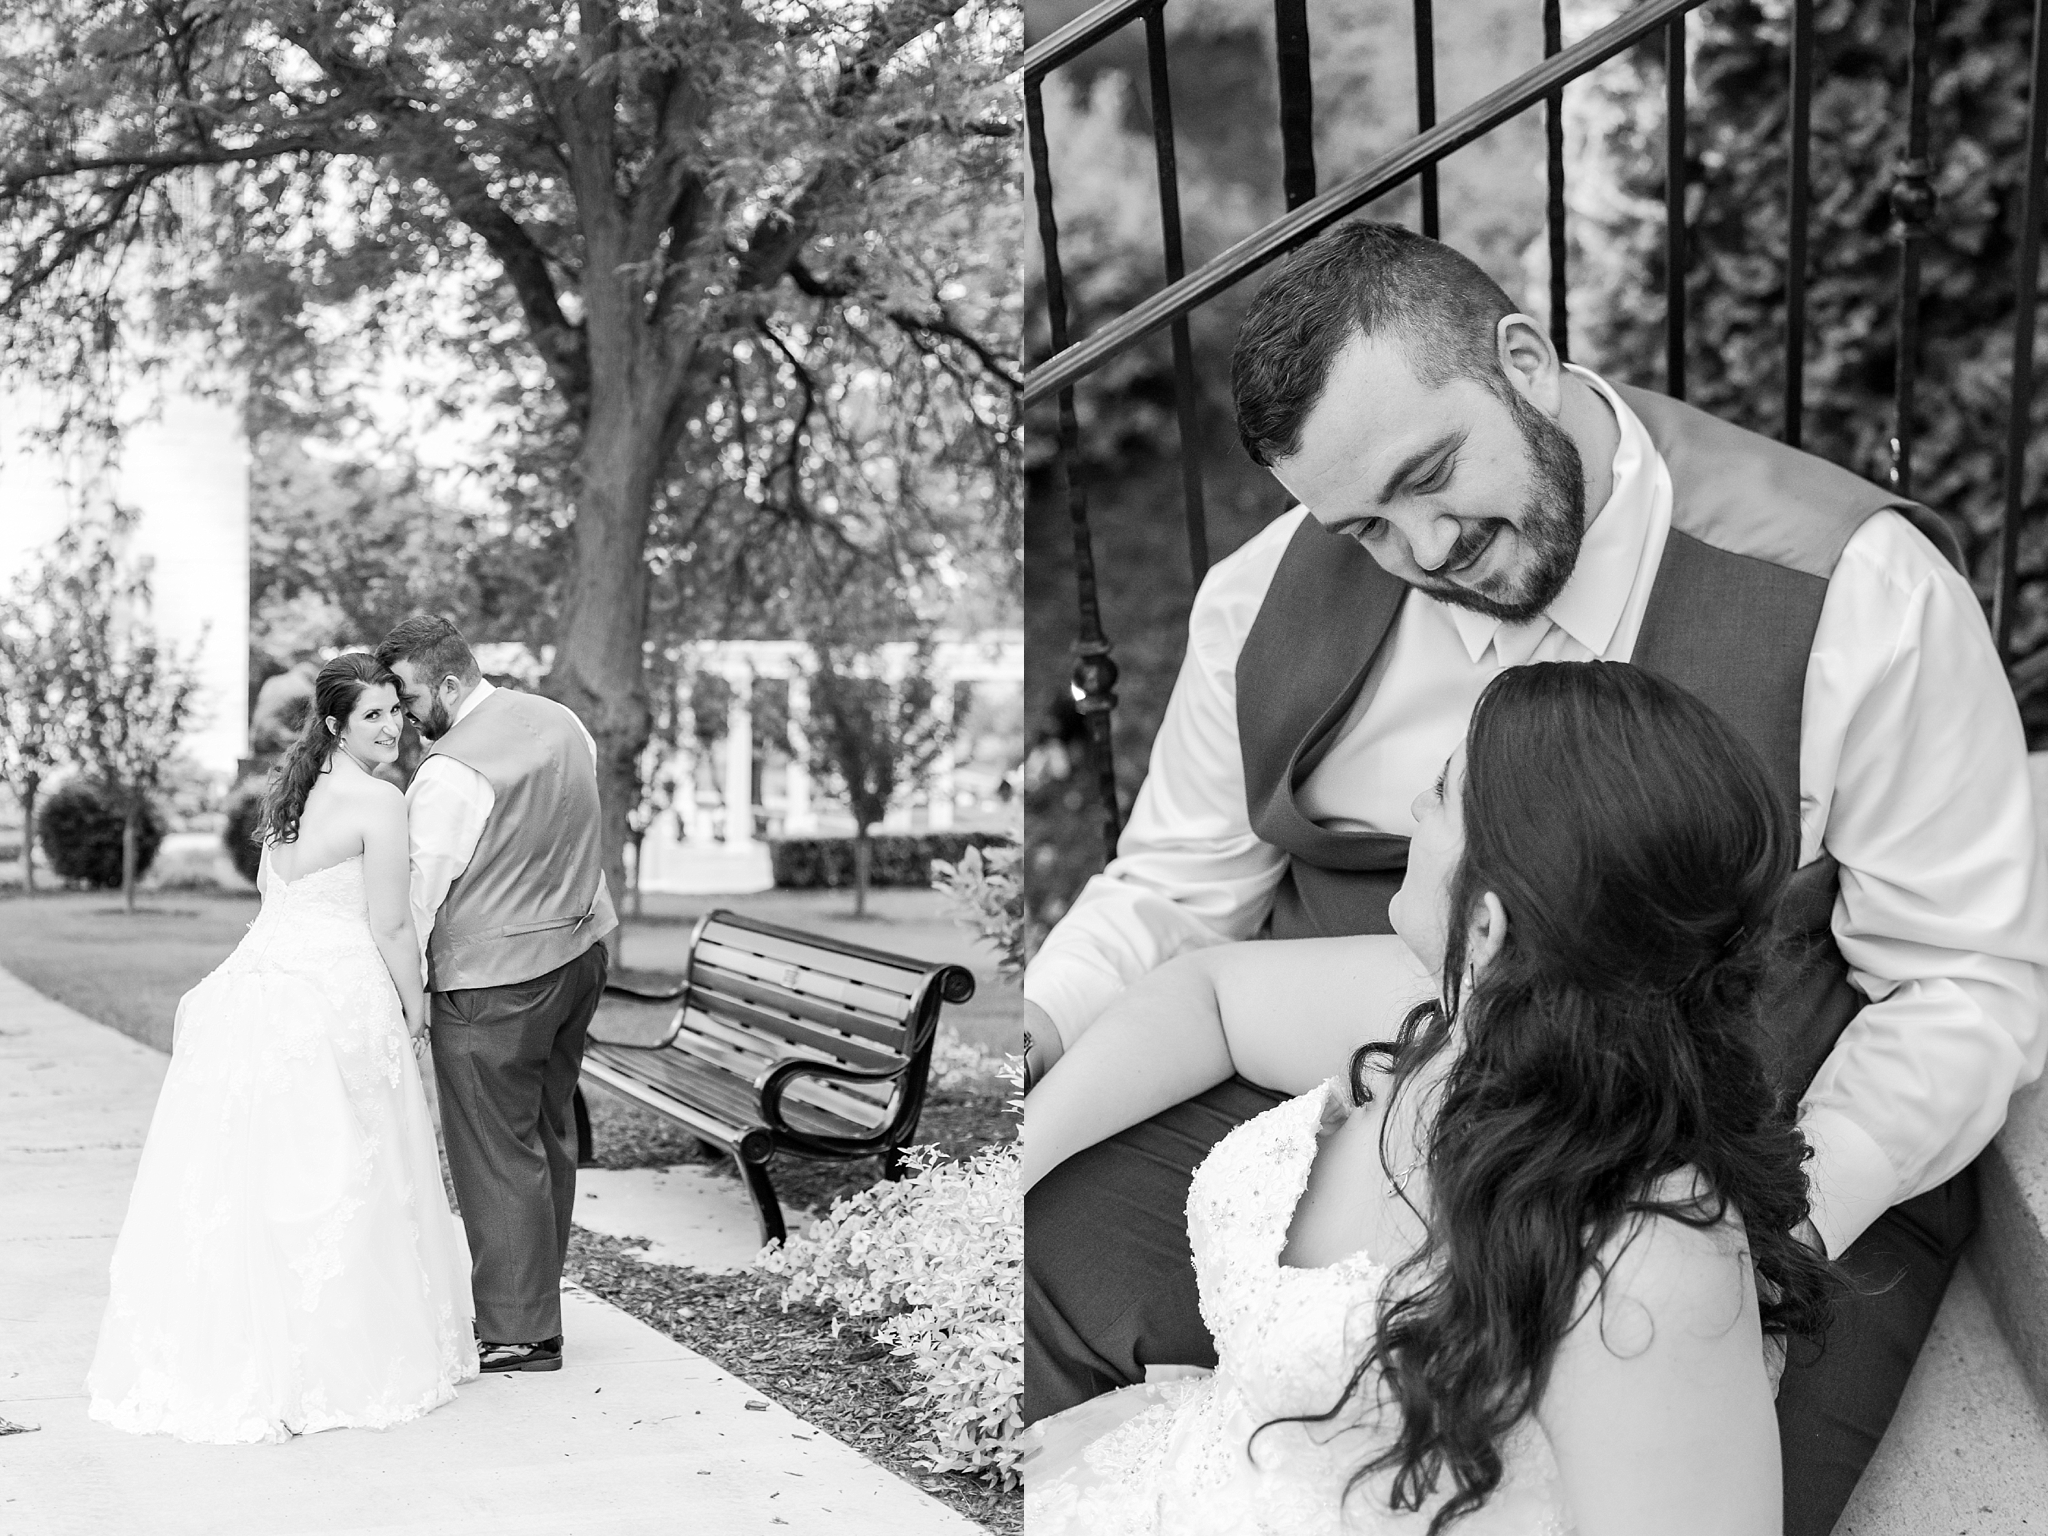 emotional-laid-back-romantic-wedding-photos-at-adrian-college-herrick-chapel-in-adrian-michigan-by-courtney-carolyn-photography_0083.jpg